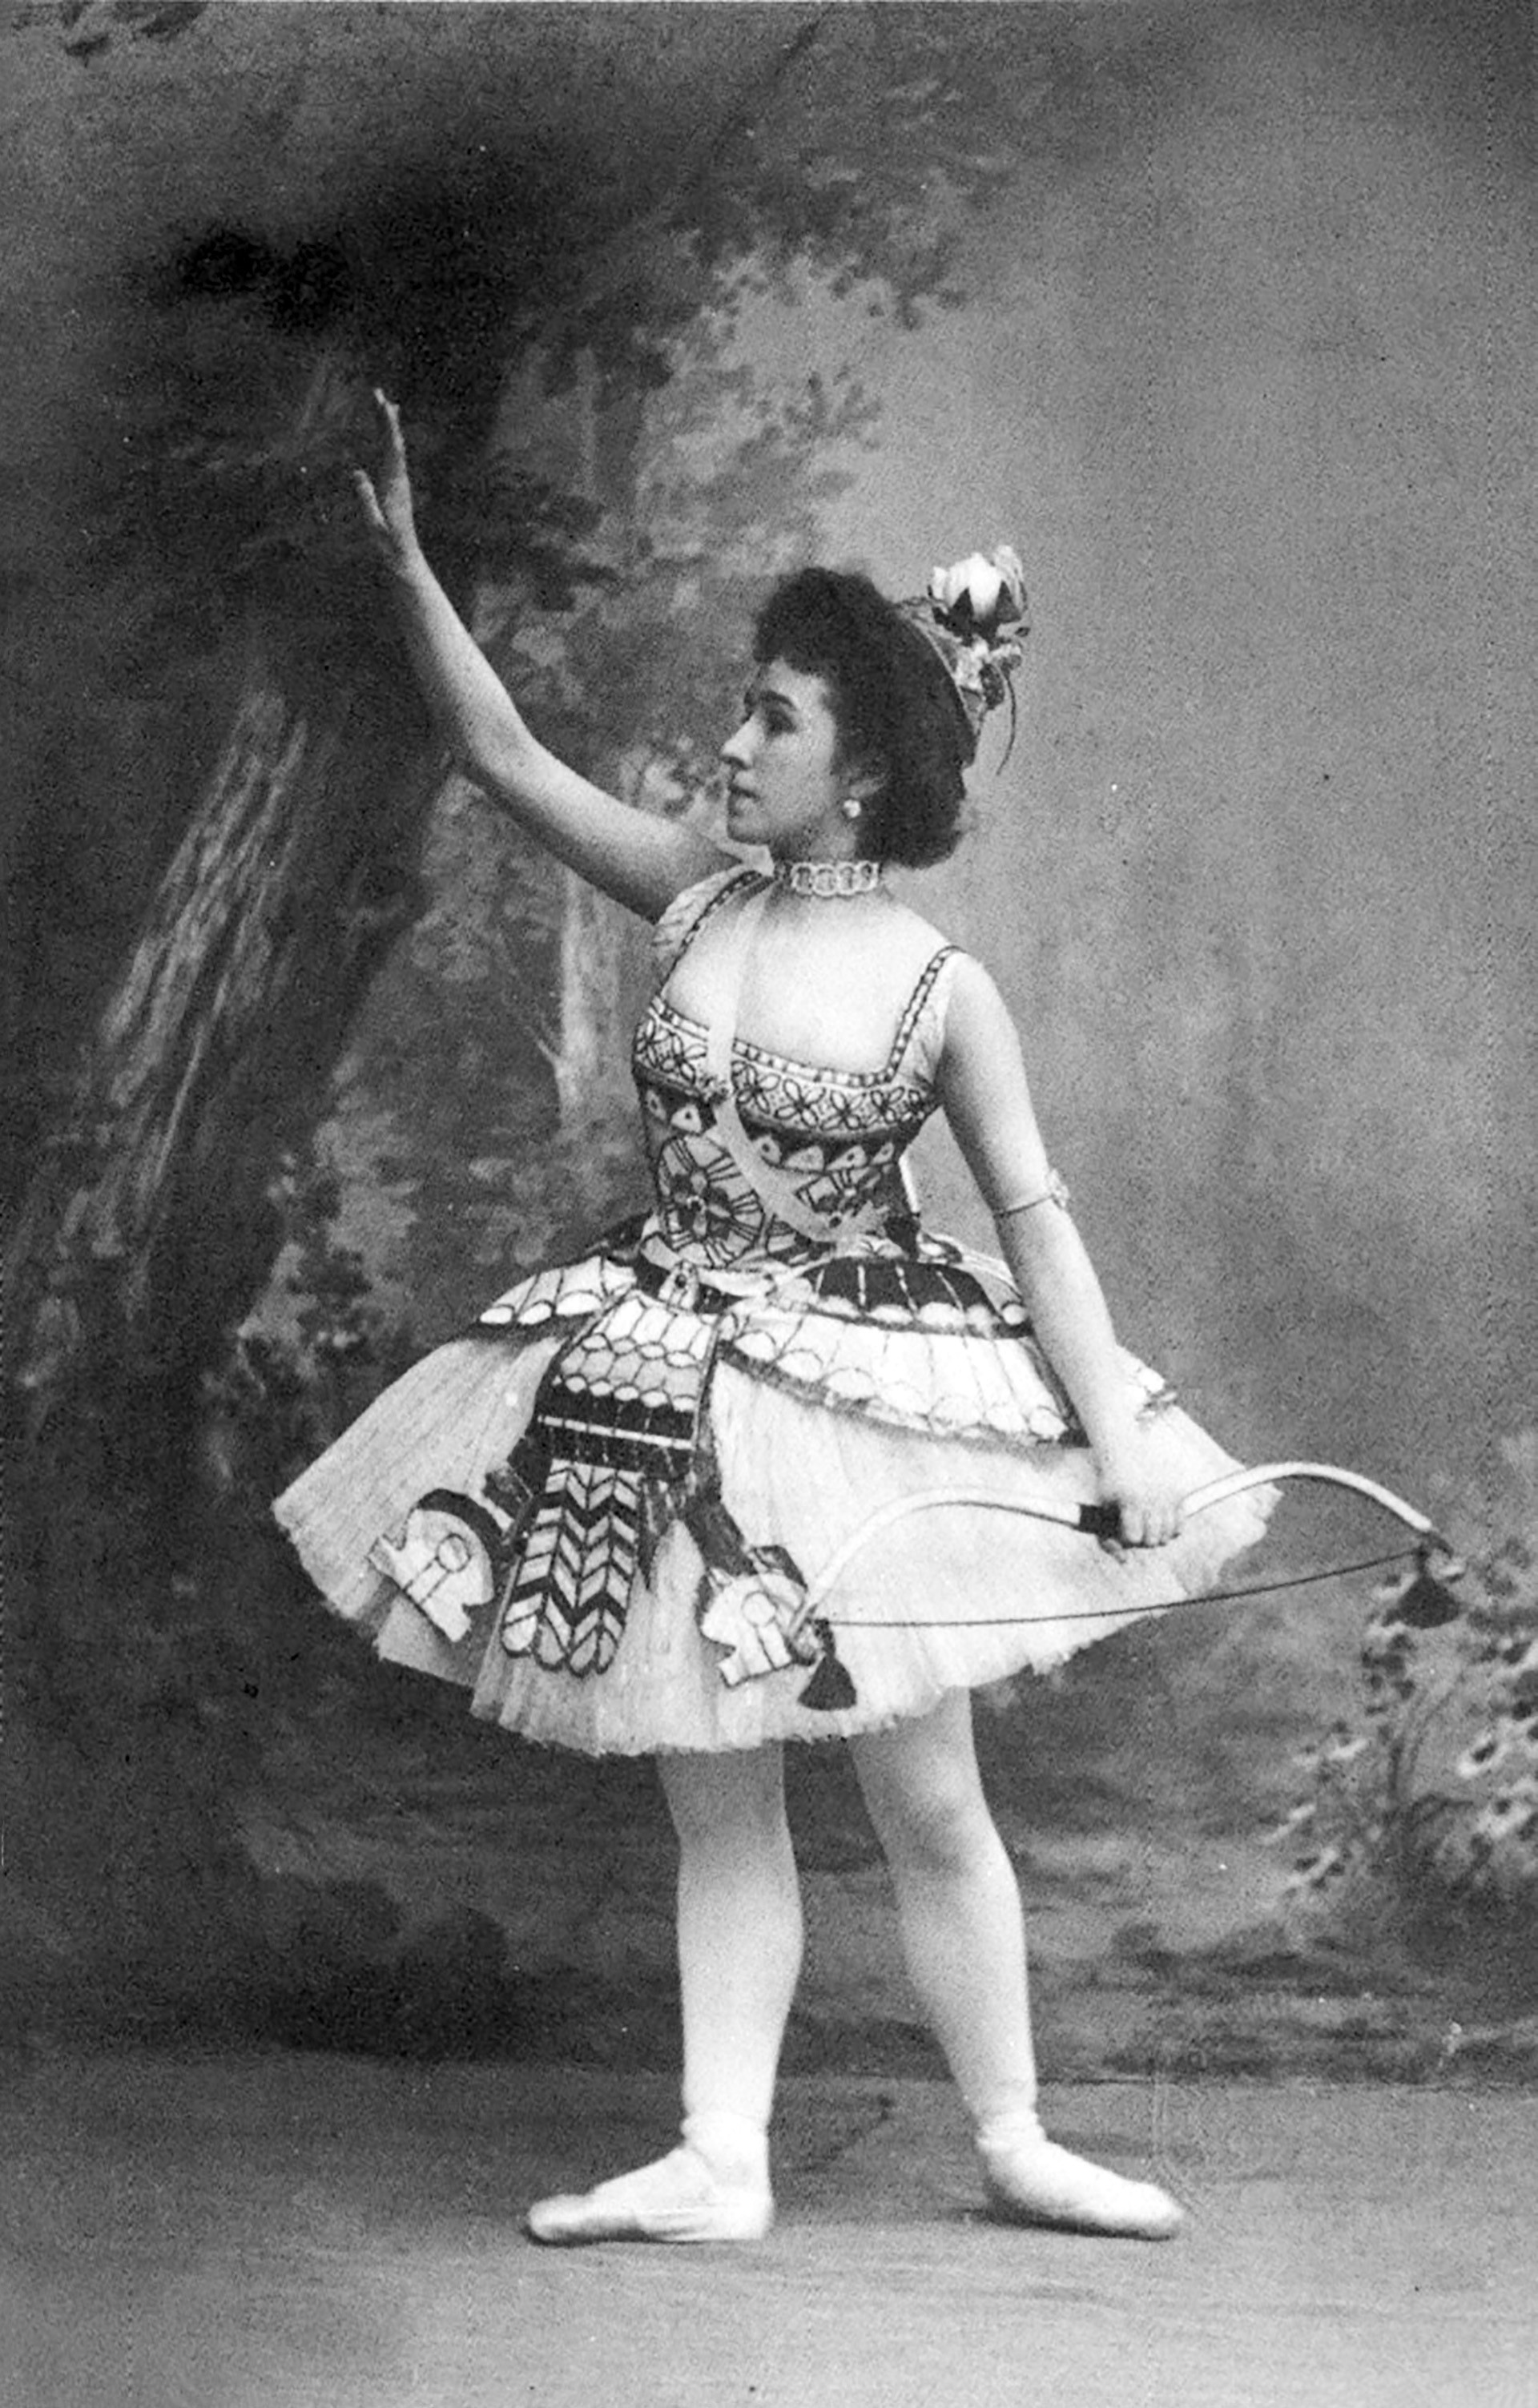 Photographic postcard of Mathilde Kschessinska costumed as the Princess Aspicia in the Grand pas des chasseresses from 'The Pharaoh's Daughter' ballet, 1898-1899